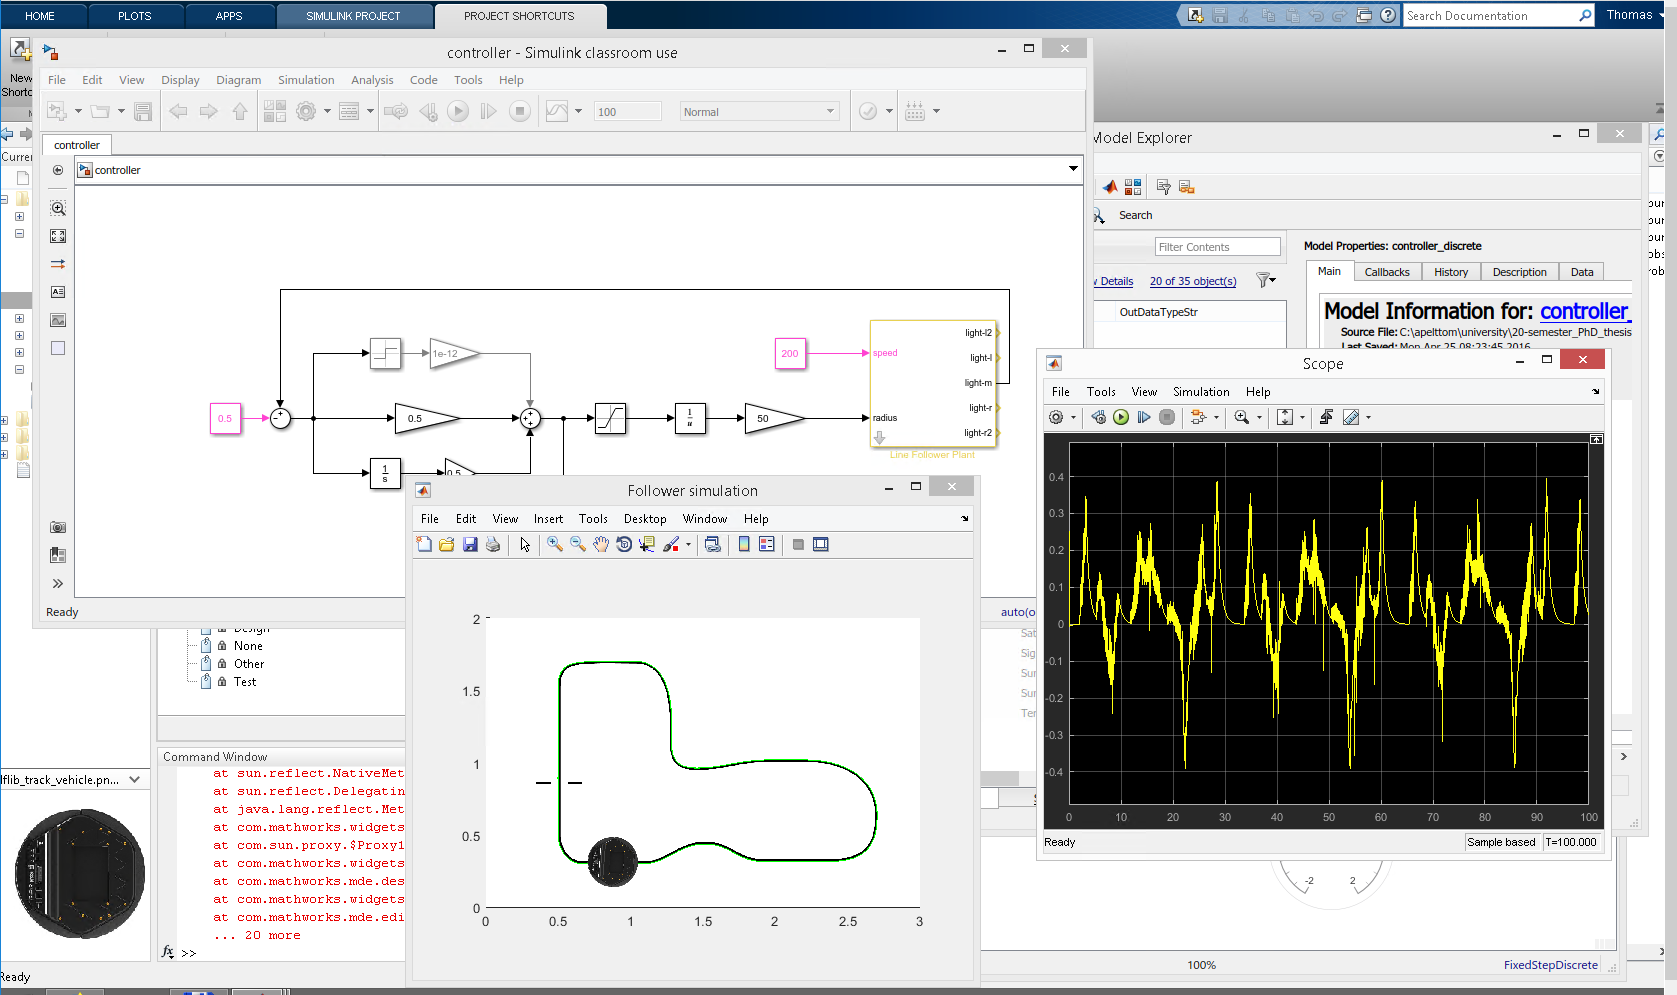 Working with MATLAB/Simulink